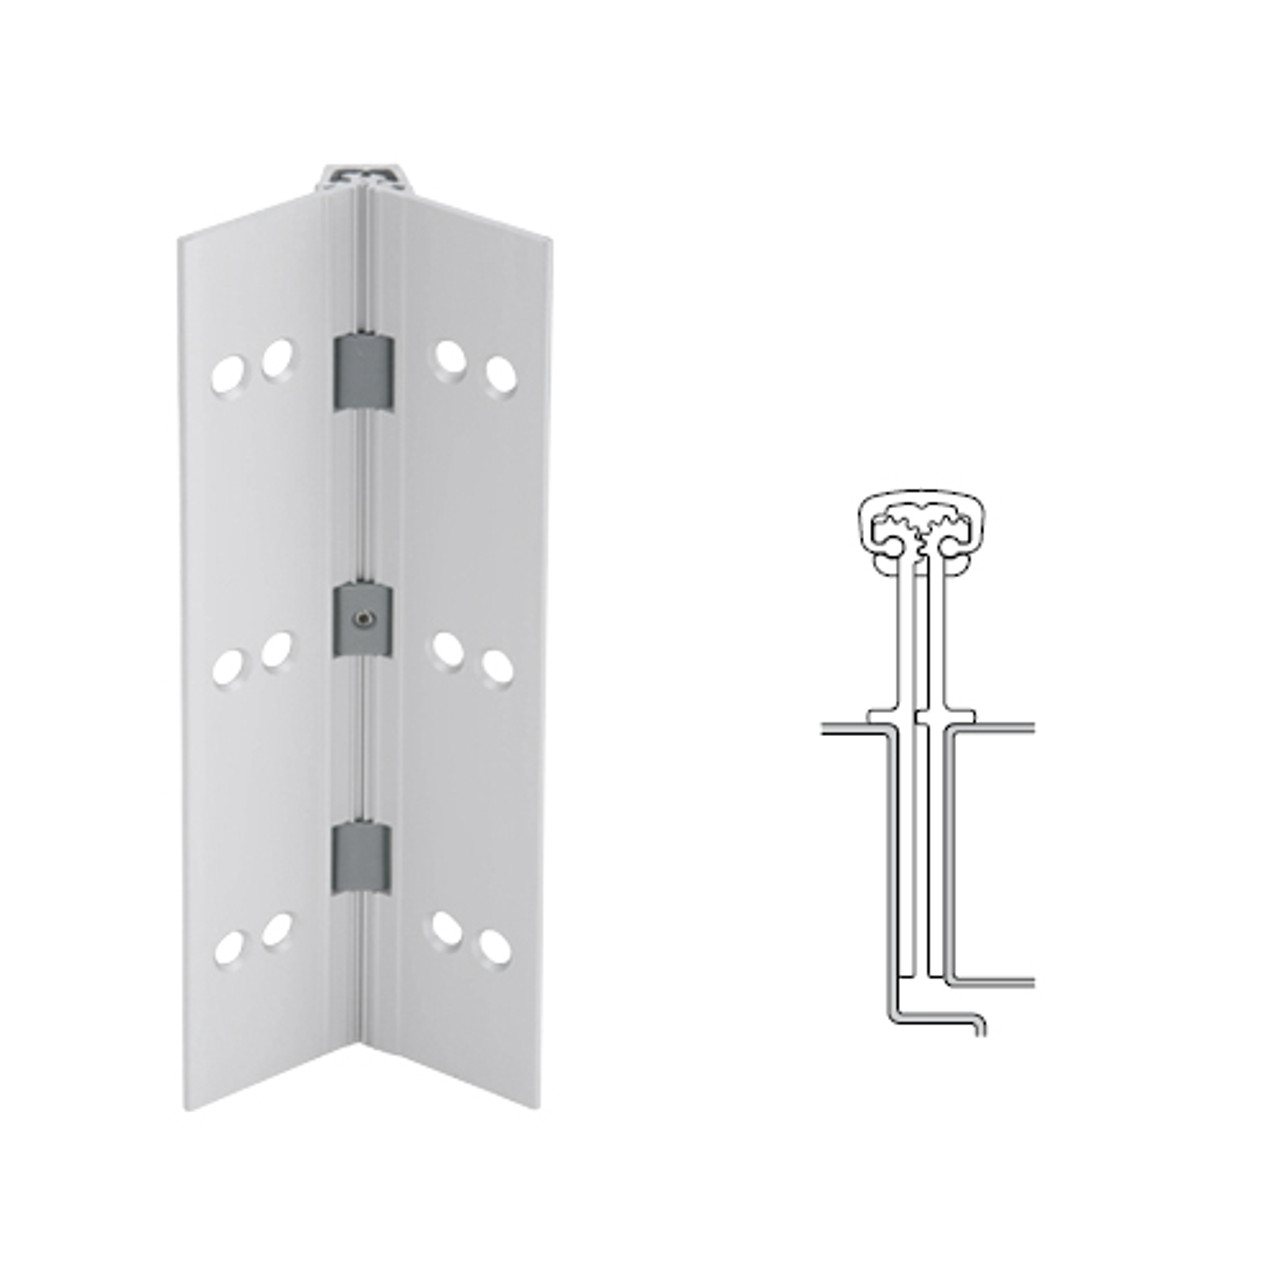 040XY-US28-85-SECWDHM IVES Full Mortise Continuous Geared Hinges with Security Screws - Hex Pin Drive in Satin Aluminum